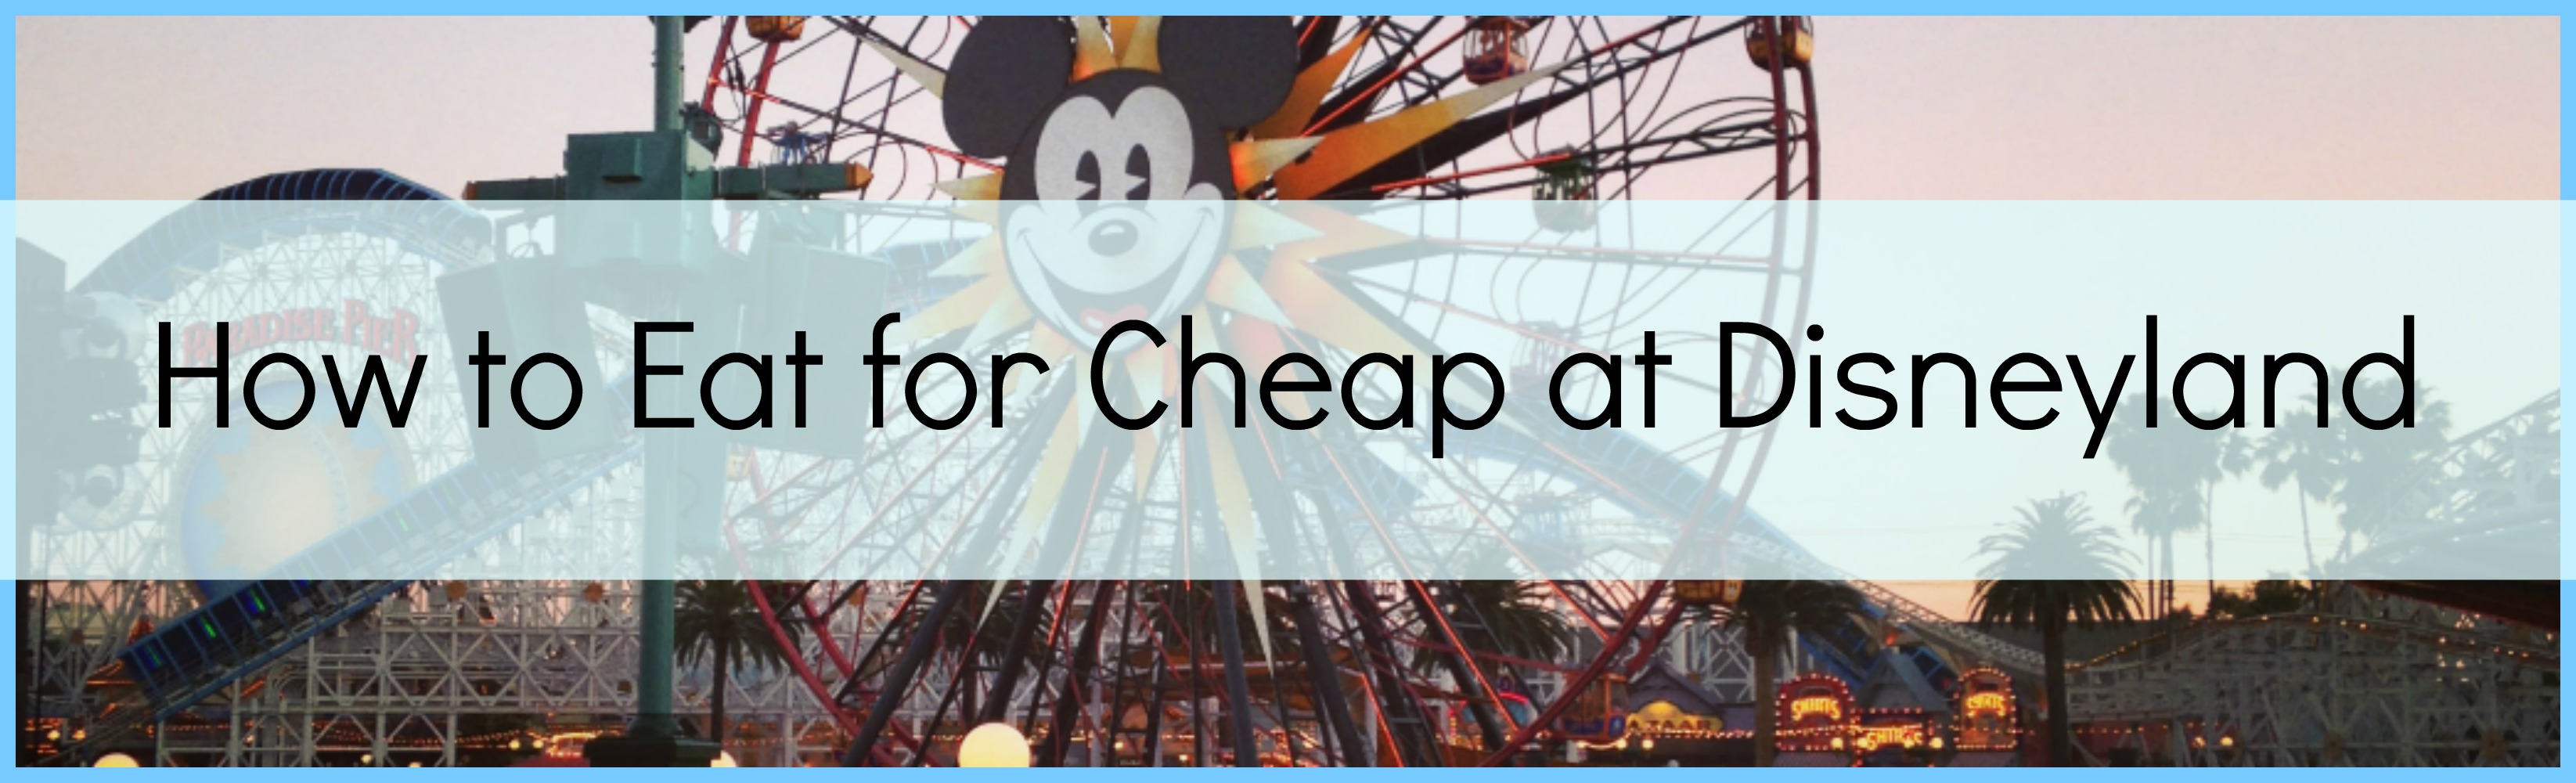 How to Eat for Cheap at Disneyland: Money Saving Disneyland Dining Tips